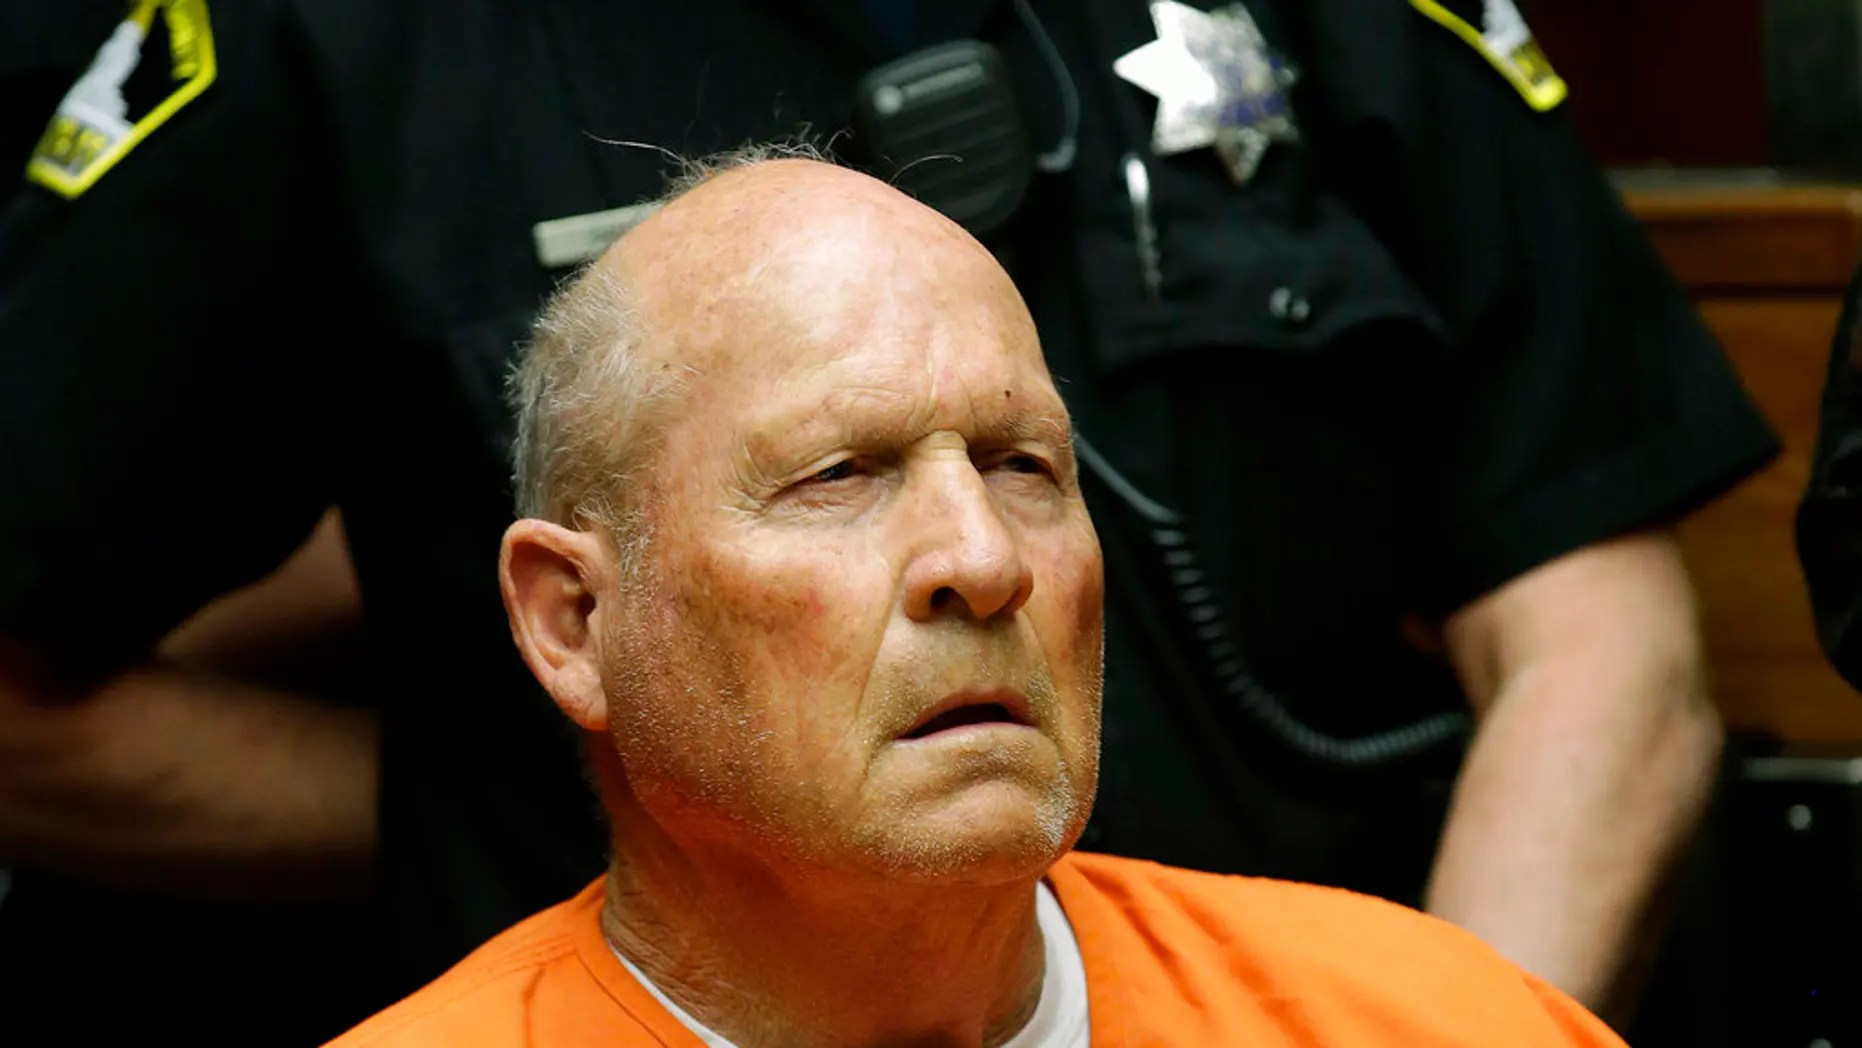 Suspected Golden State Killer S Ex Fiancee Revealed As